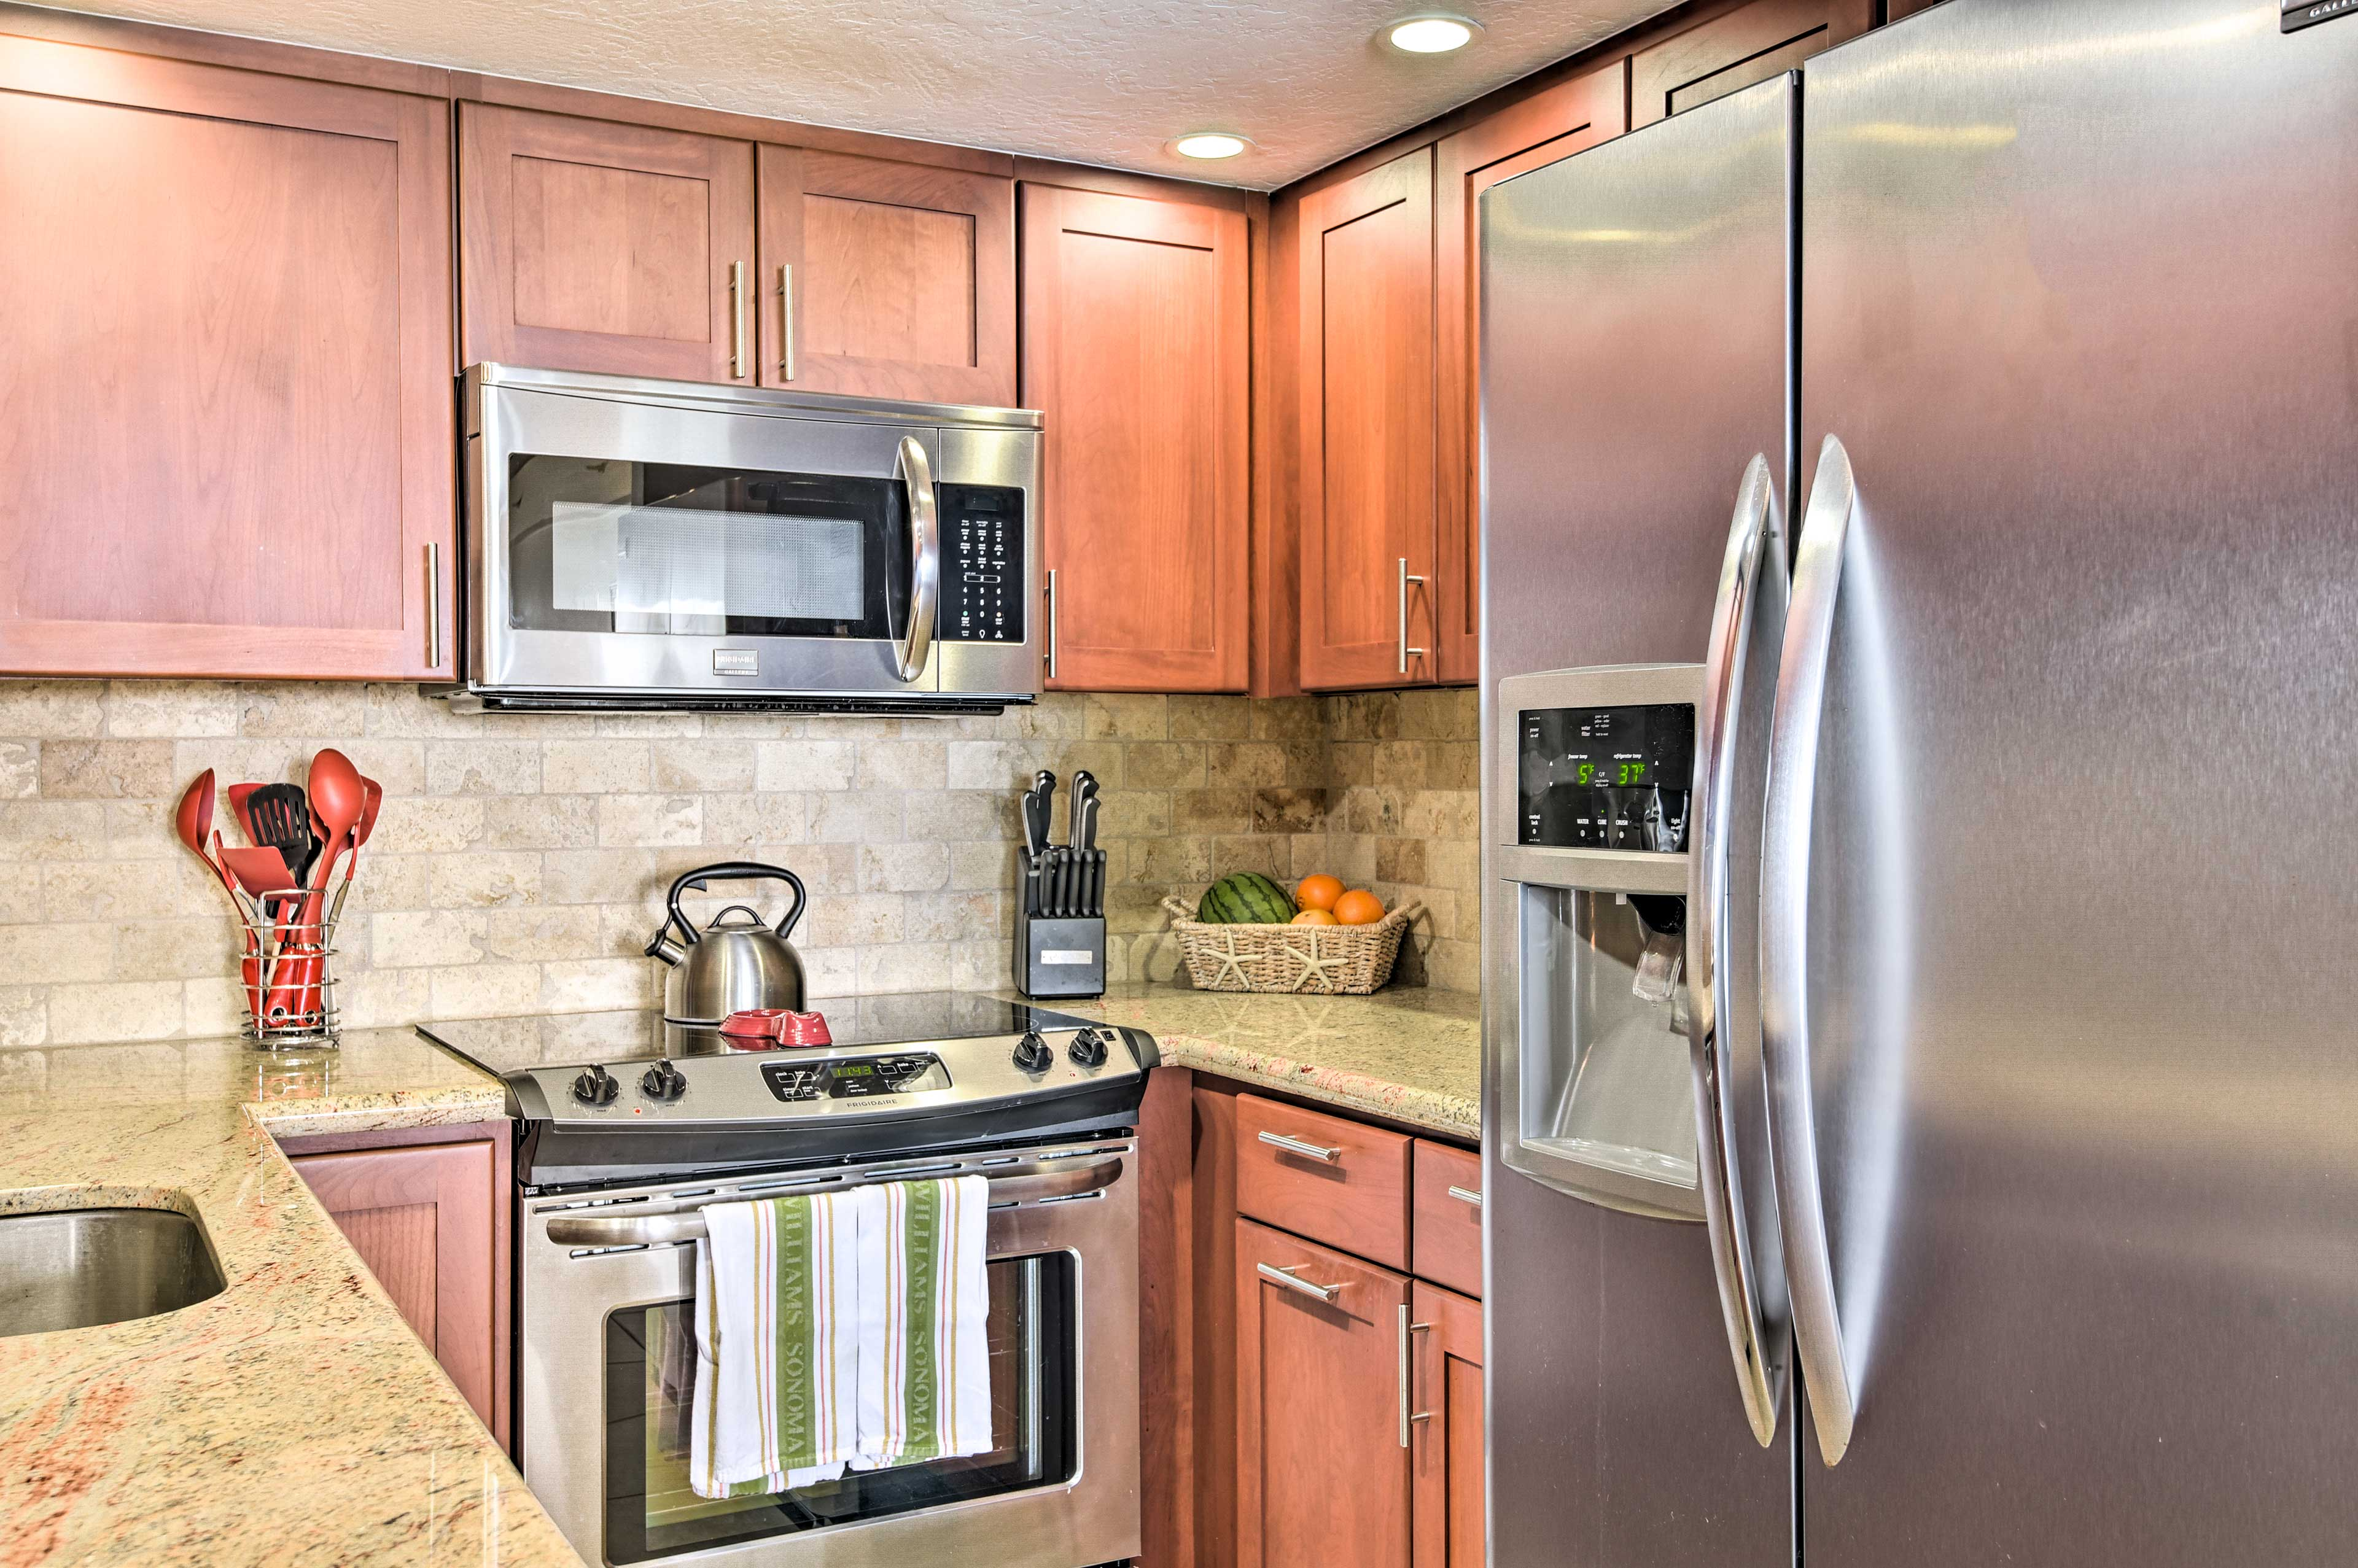 Stainless steel appliances gleam in the fully equipped kitchen.